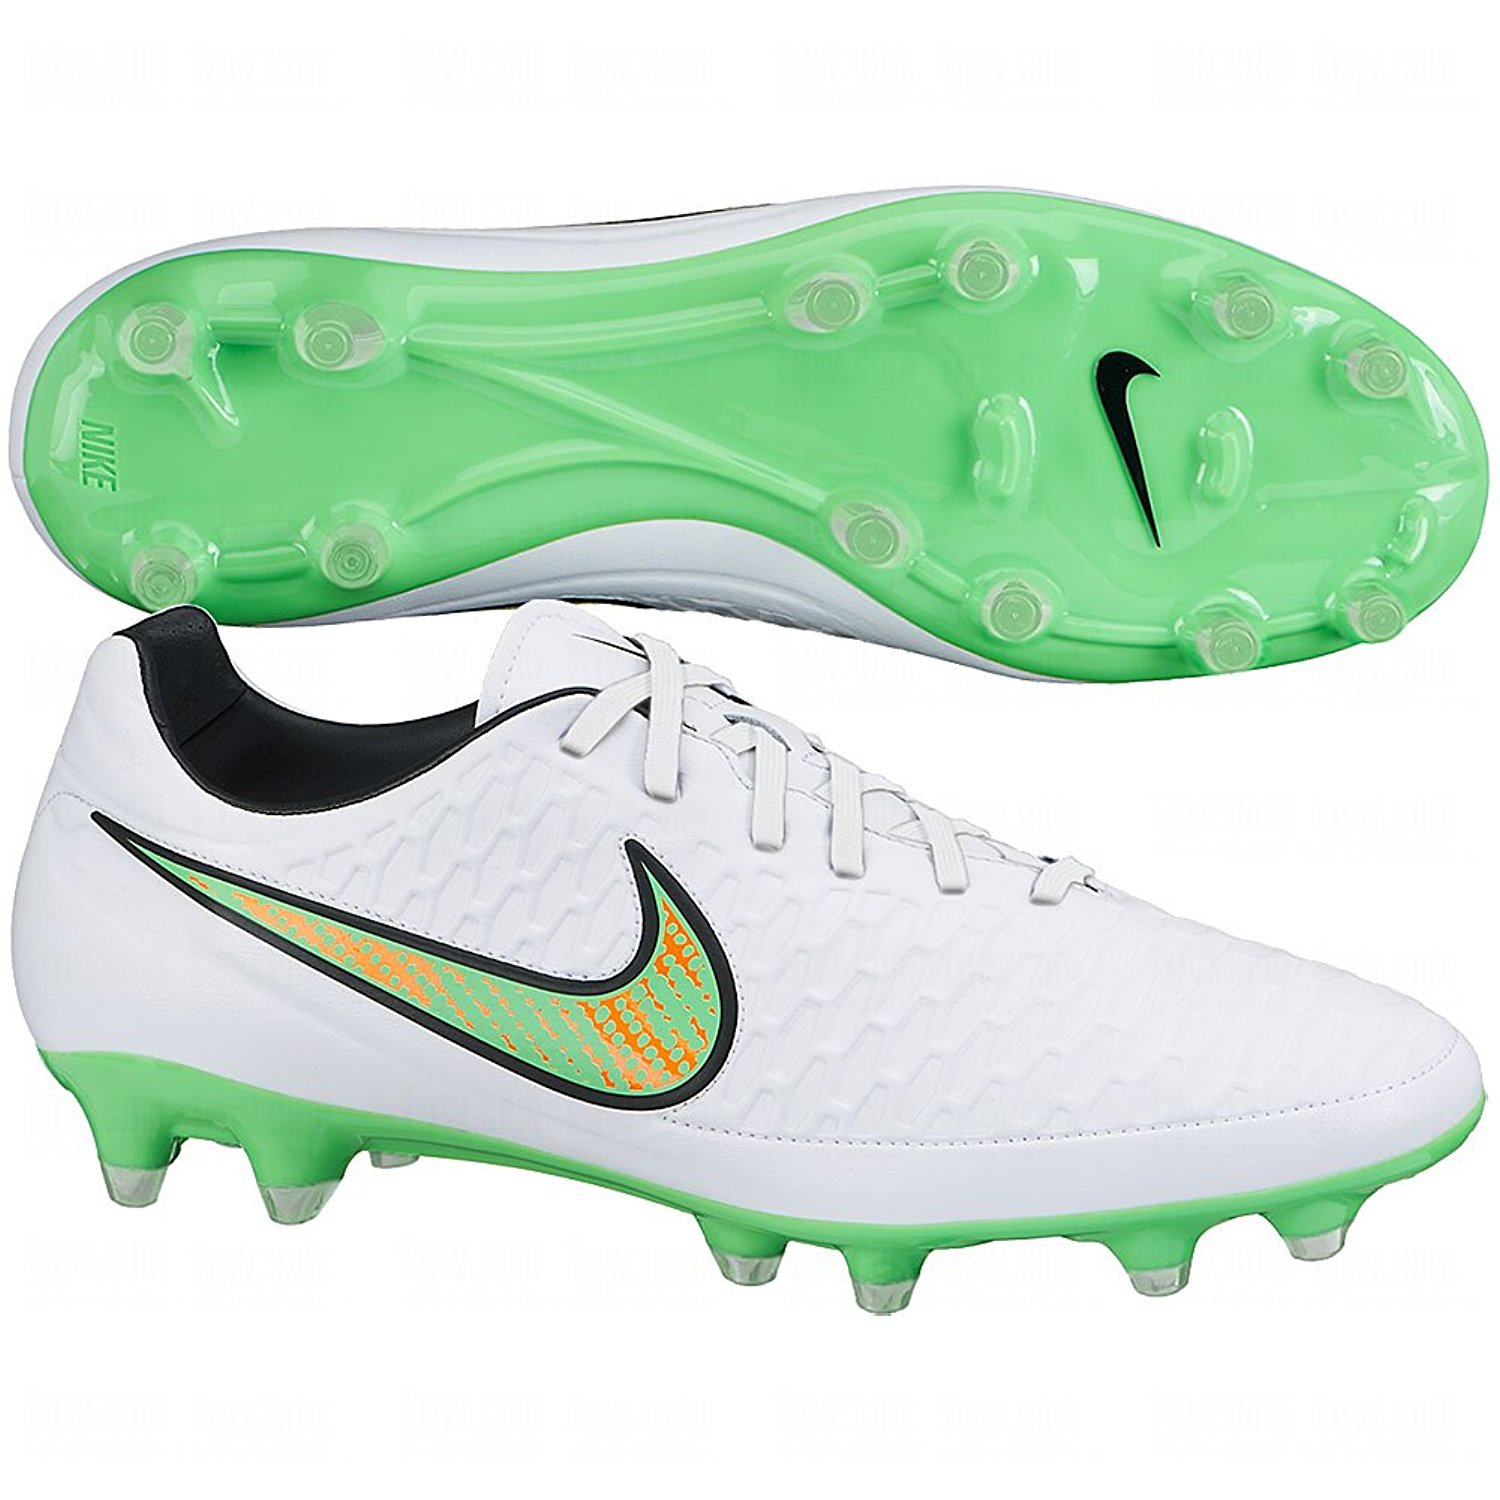 ee953b6b2 Get Quotations · nike magista orden SG mens football boots 651540 soccer  cleats soft ground (uk 8.5 us